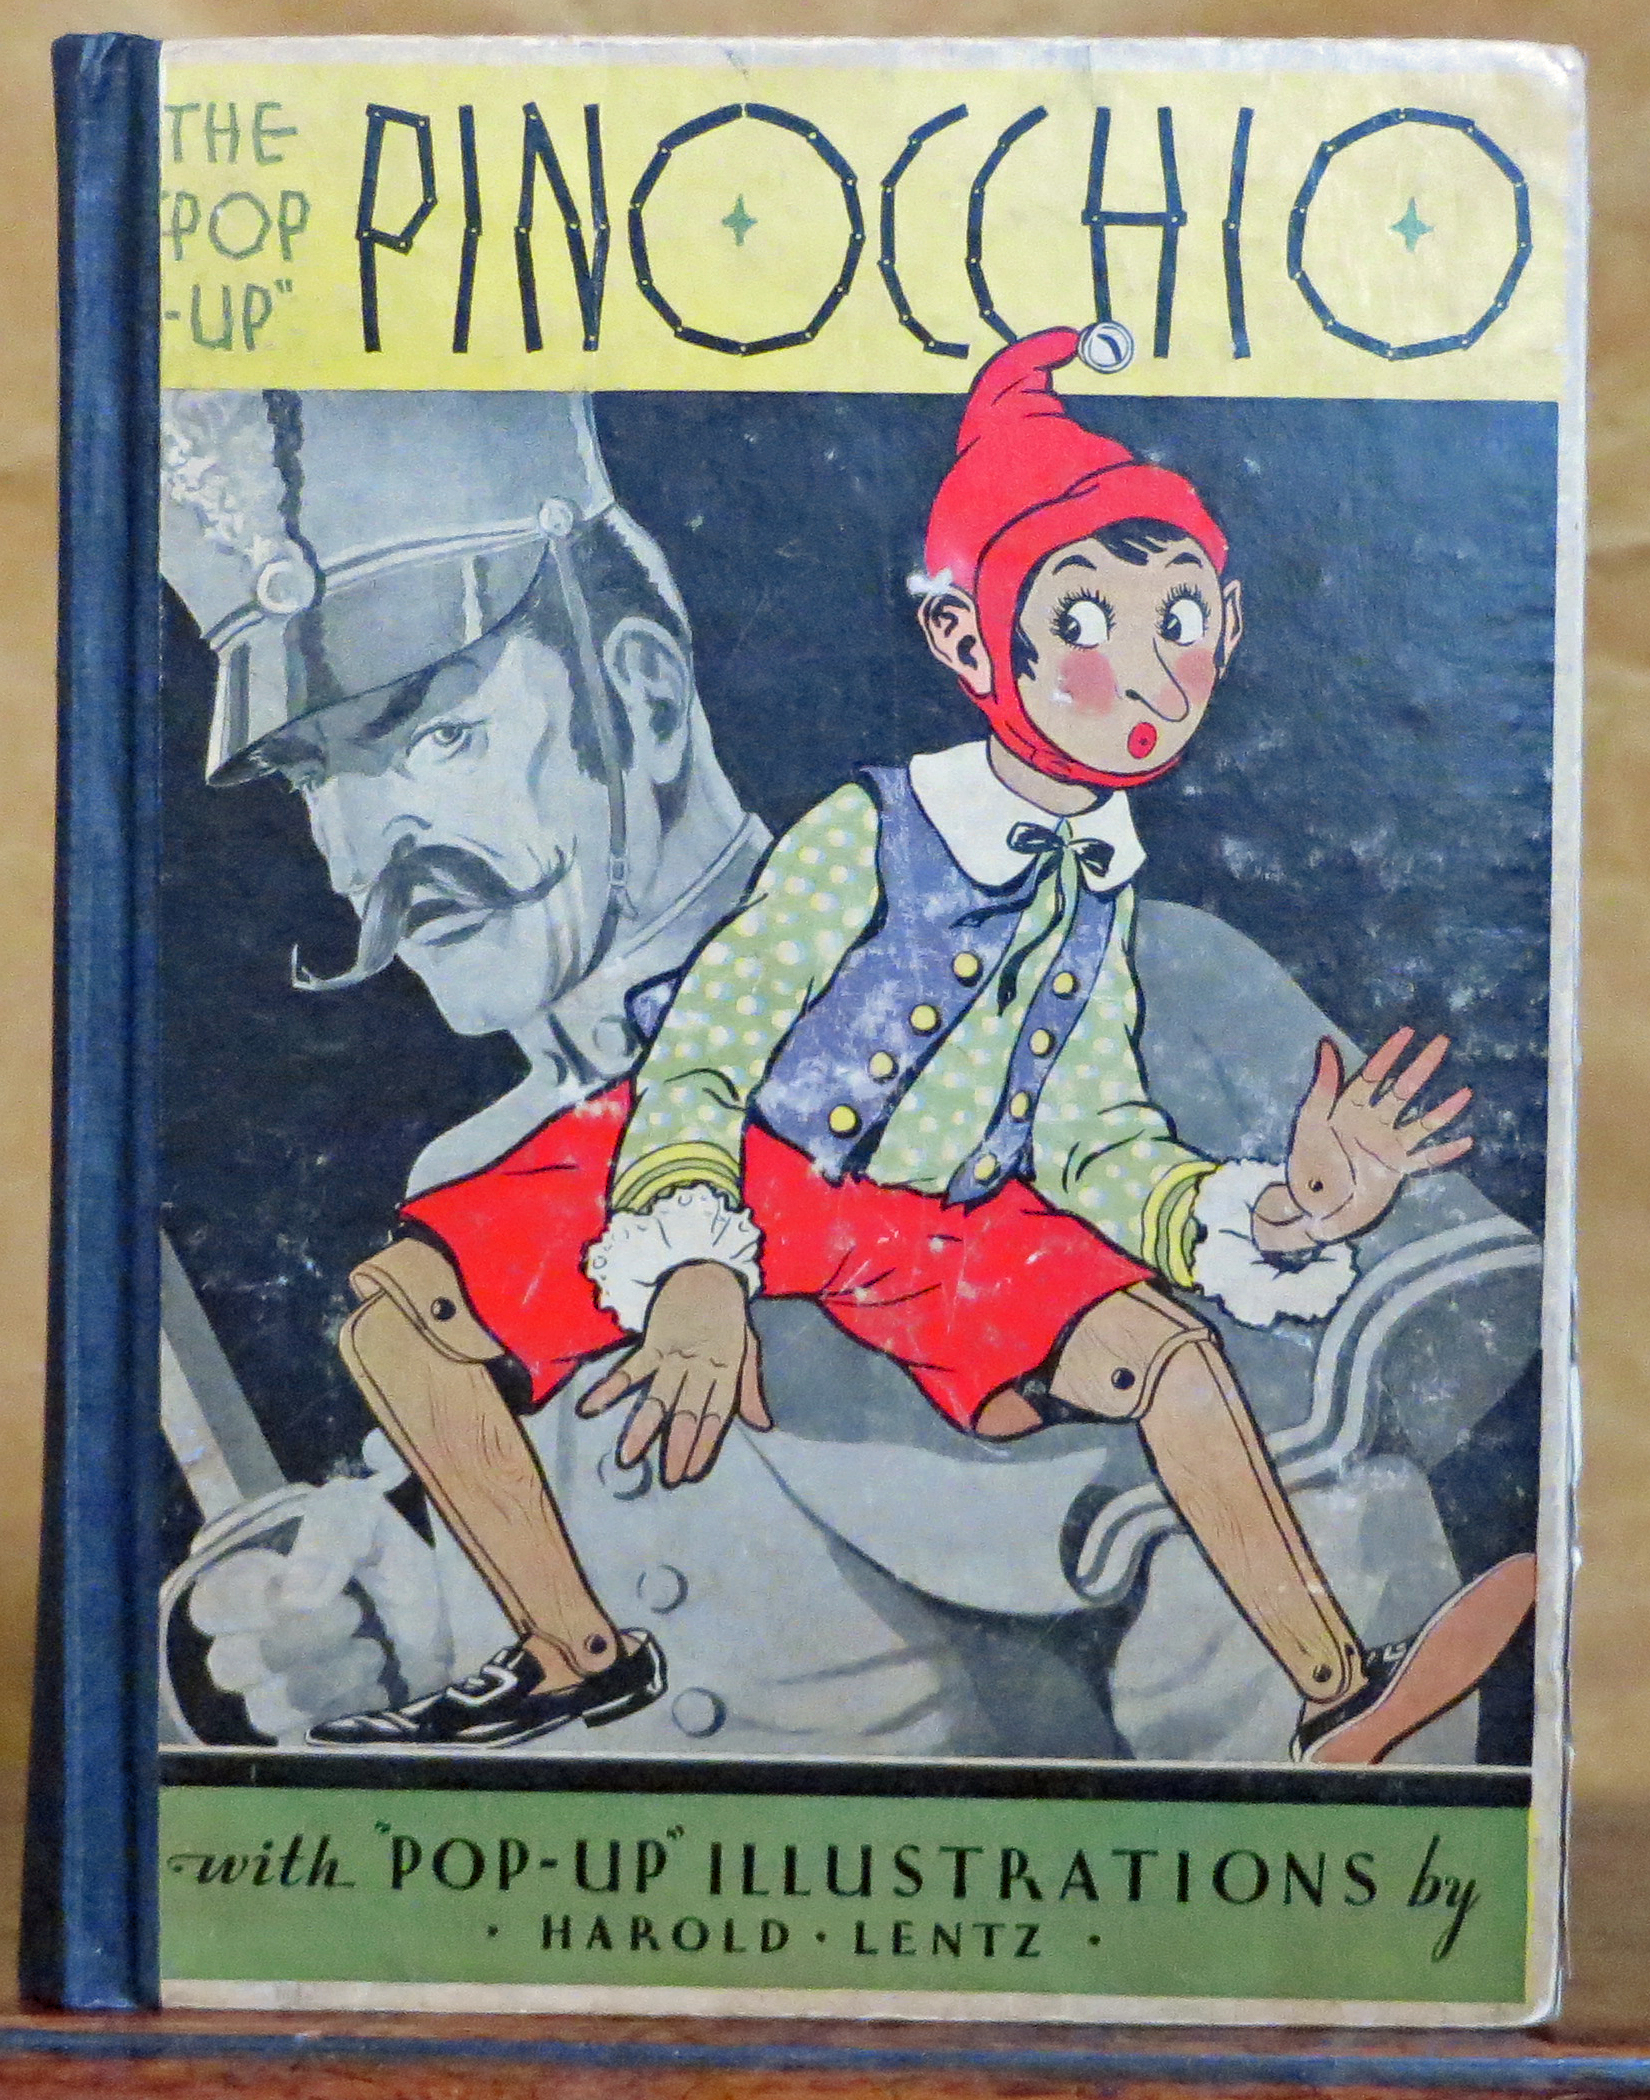 image for the pop up pinocchio